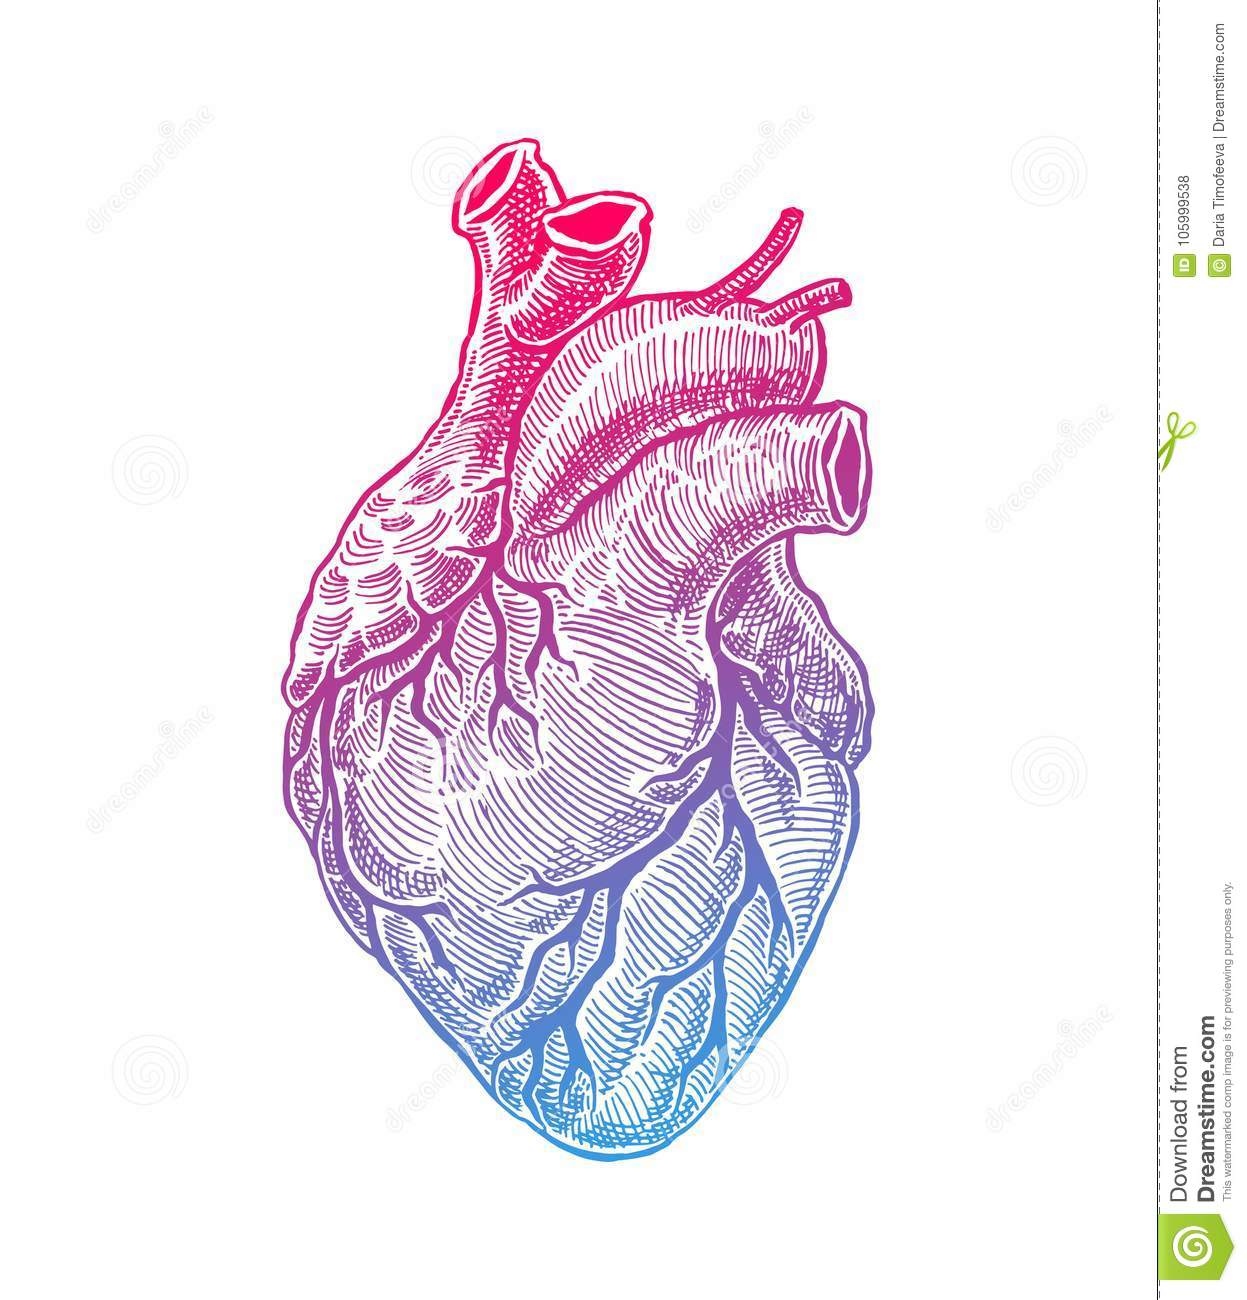 Realistic Human Heart stock vector. Illustration of graphic - 105999538